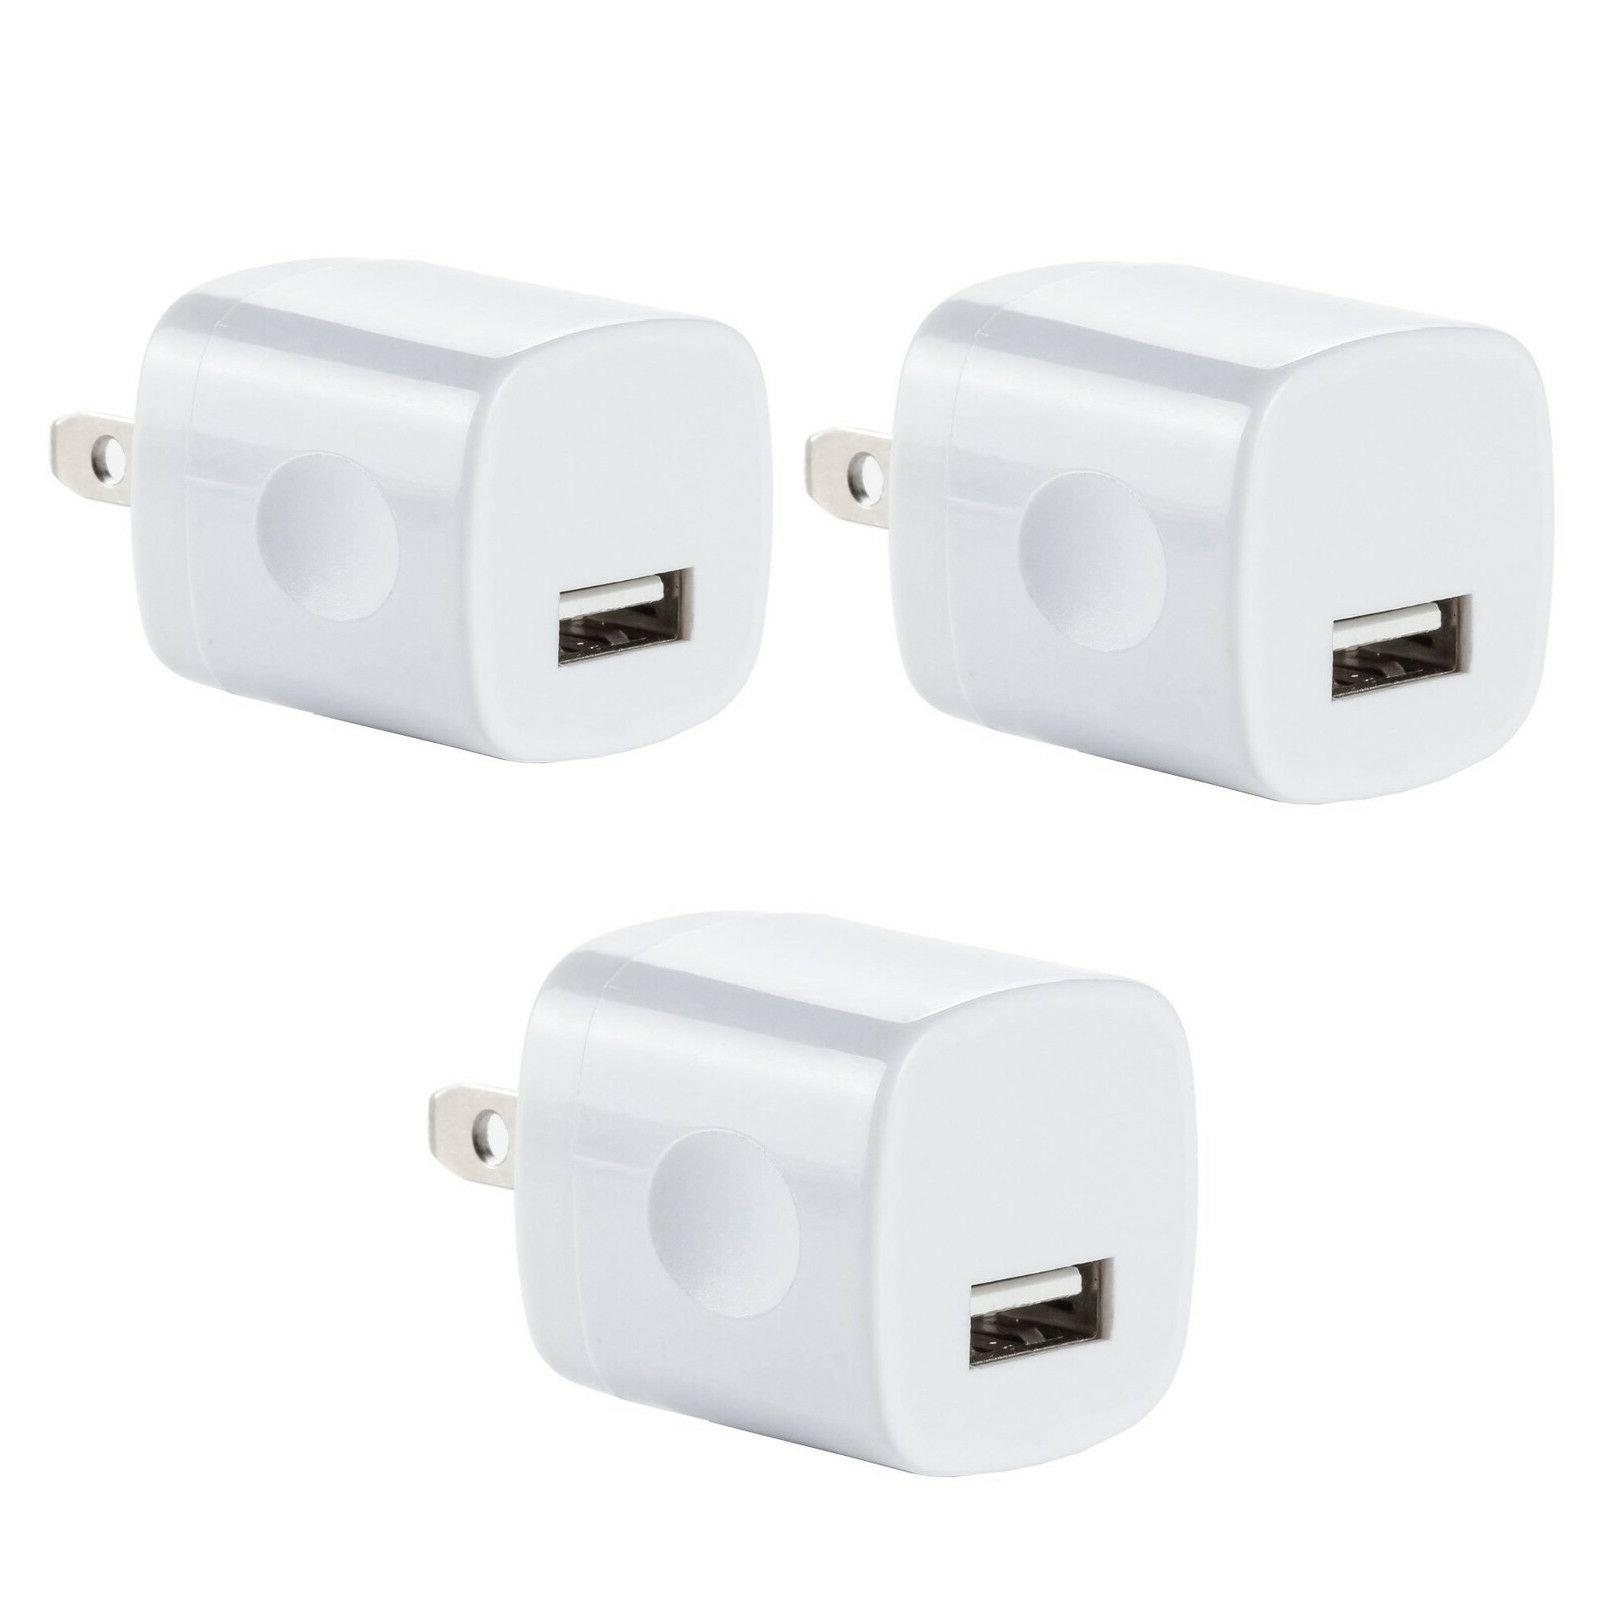 3x USB Wall Charger Power Adapter AC Home US Plug FOR iPhone